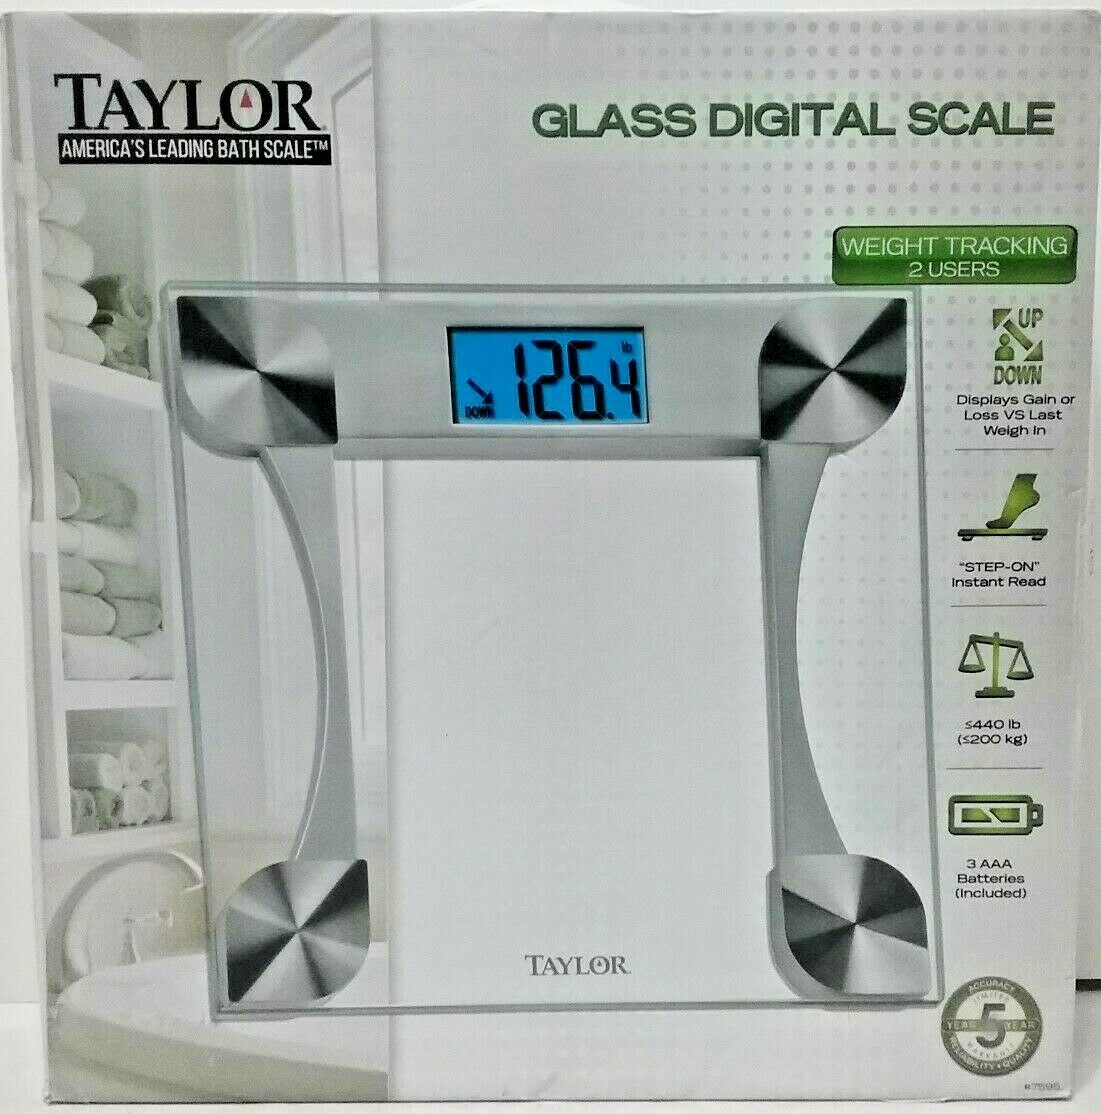 Taylor Glass Digital Bathroom Scale Weight Tracking (2 Users) 440lbs 1 Of  5Only 2 Available ...